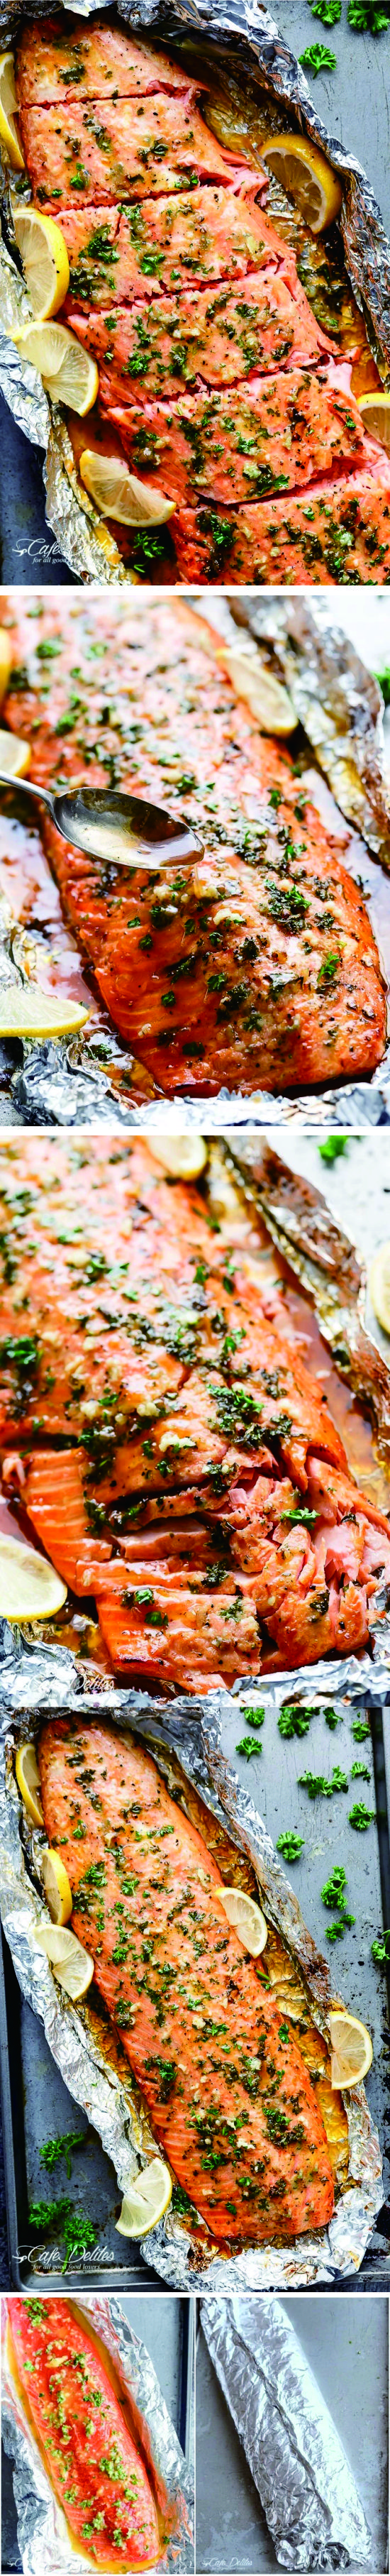 87 best healthy recipes images on pinterest health healthy menu 87 best healthy recipes images on pinterest health healthy menu and lose weight ccuart Images